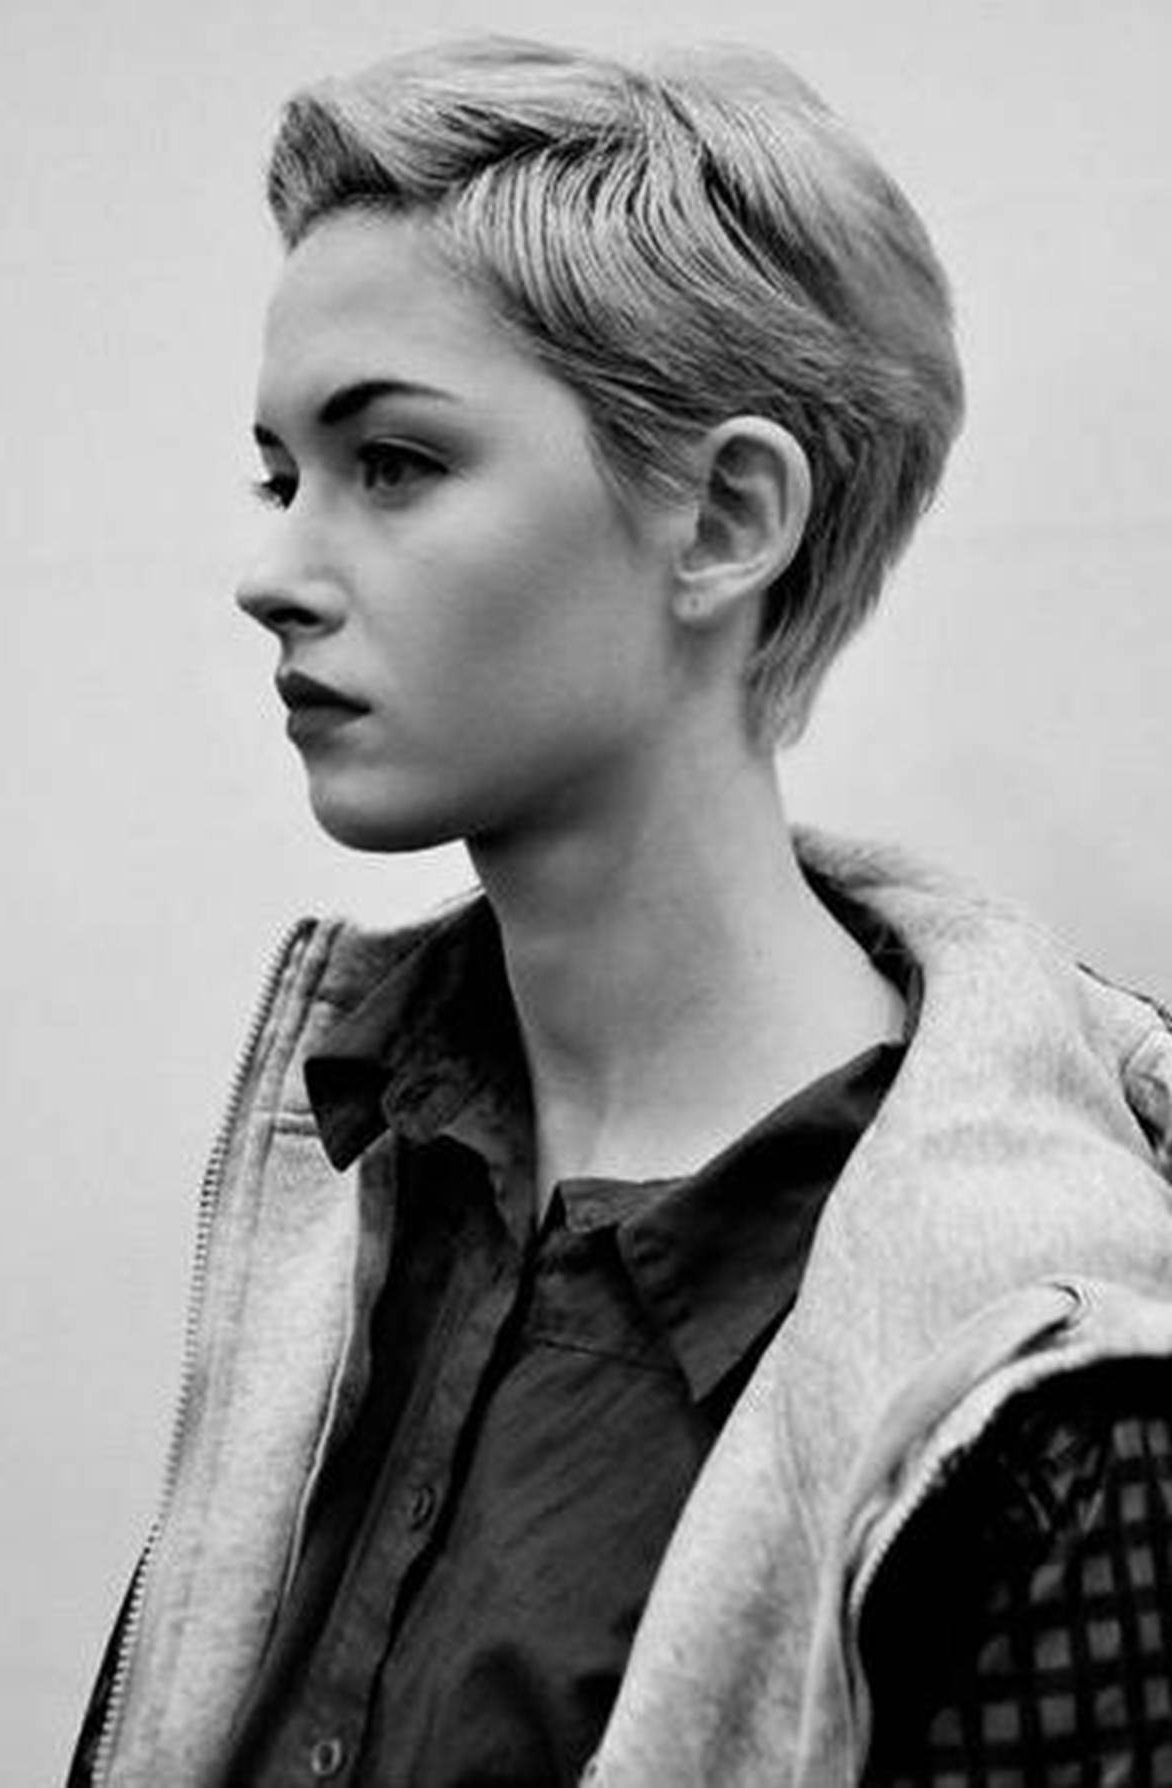 Mesmerizing Half Shaved Hairstyles Short Hair Also Shaved Haircuts Inside Part Shaved Short Hairstyles (View 10 of 25)